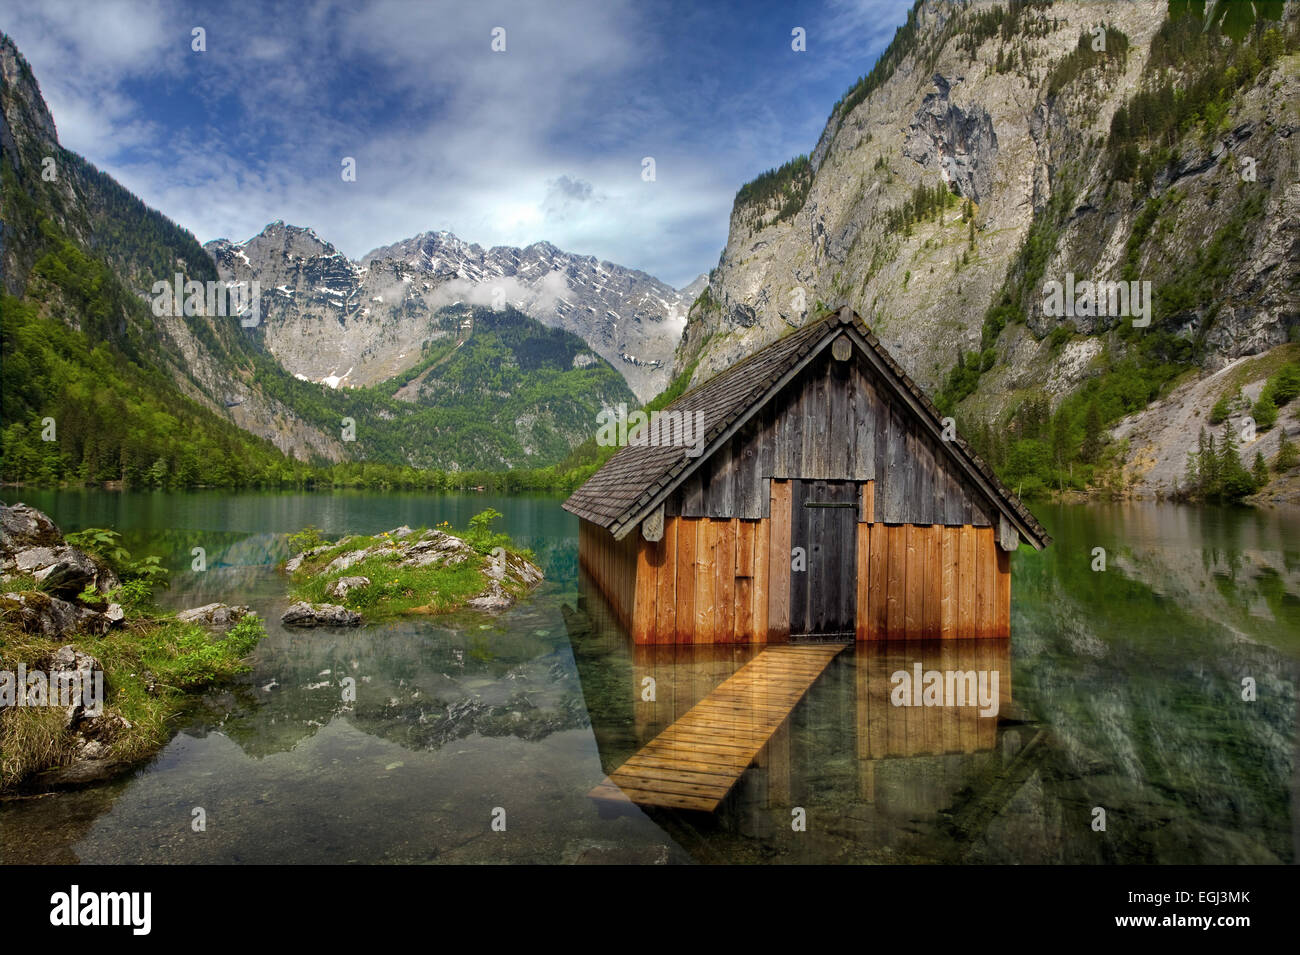 obersee h tte see spiegelung alpen nationalpark berchtesgaden stock photo 79074035 alamy. Black Bedroom Furniture Sets. Home Design Ideas